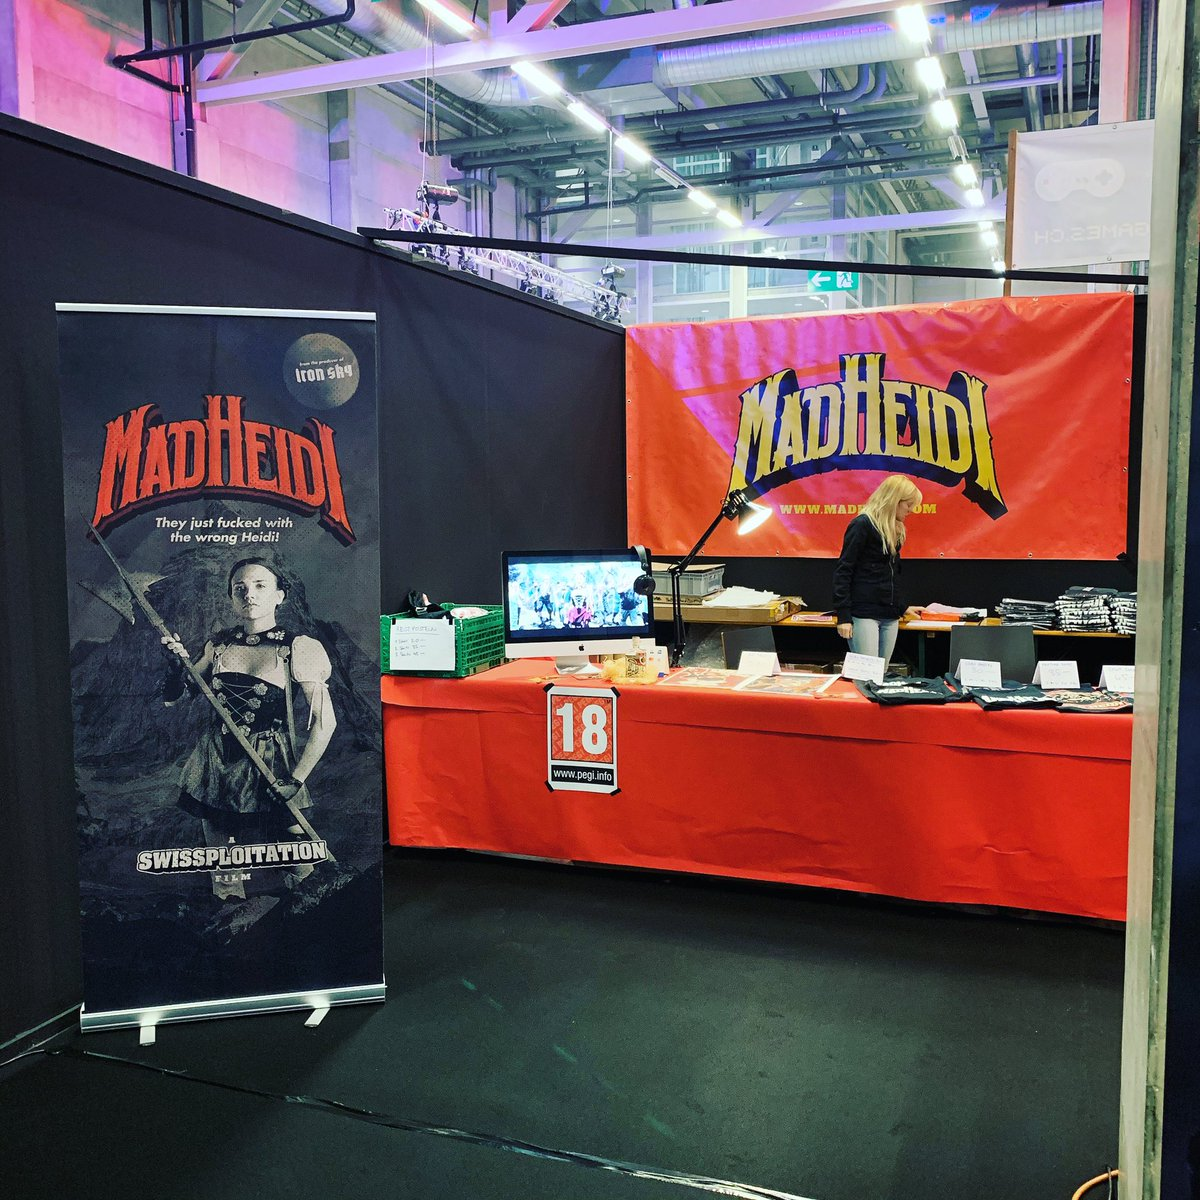 Visit us at HeroFest this weekend!   From today until Sunday!  #herofest @herofestch @SGDAch @igdach @Swissgamecenter @SwissGamersSGN #swissgames #swissfilms #swissfilm pic.twitter.com/KOM2zTb6L8